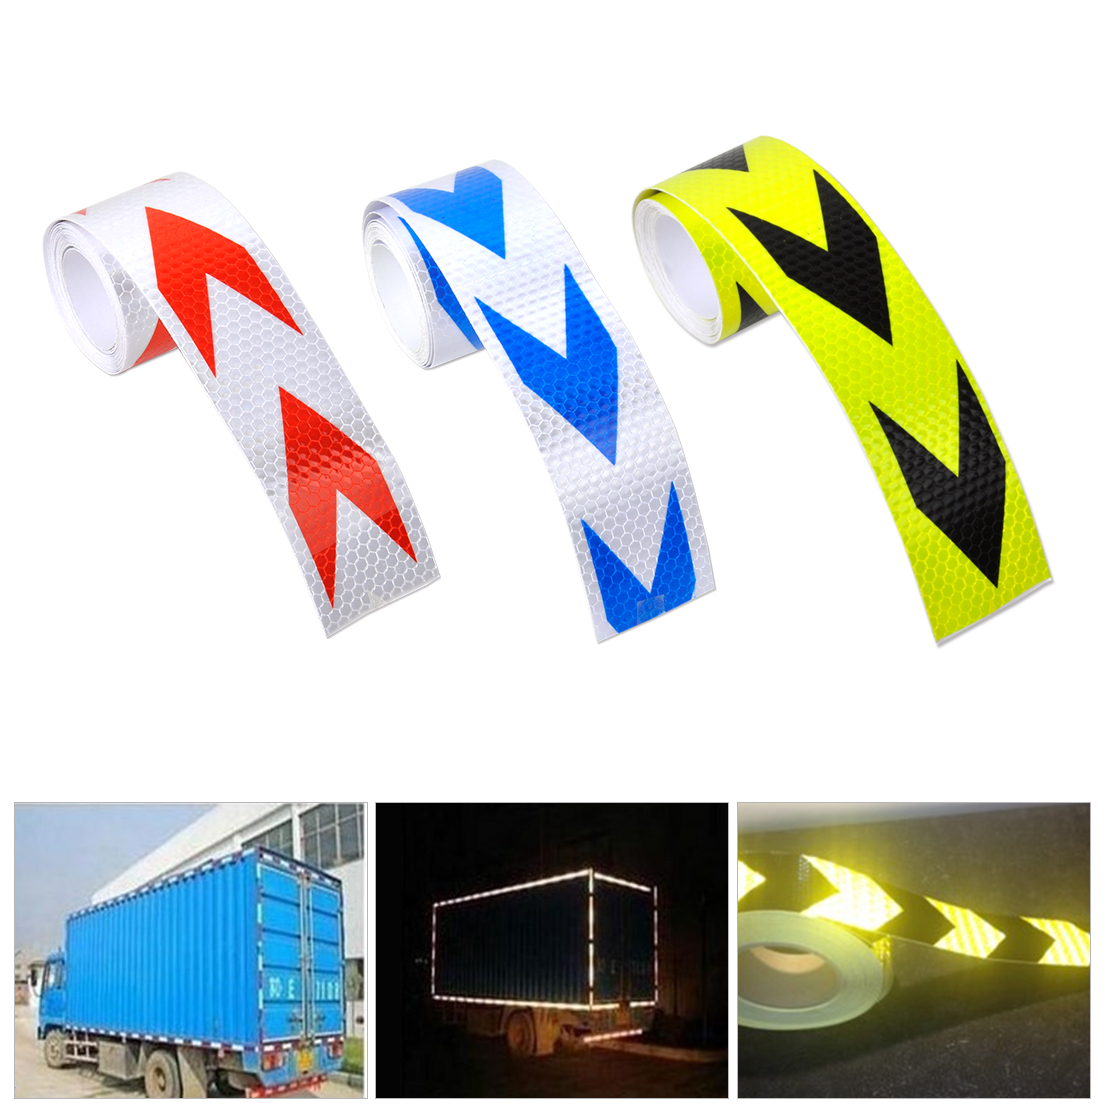 beler 5cmX3M 2X10 Reflective Safety Caution Warning Conspicuity Tape Film Sticker with Arrow Type for VW Kia Audi BMW Kia